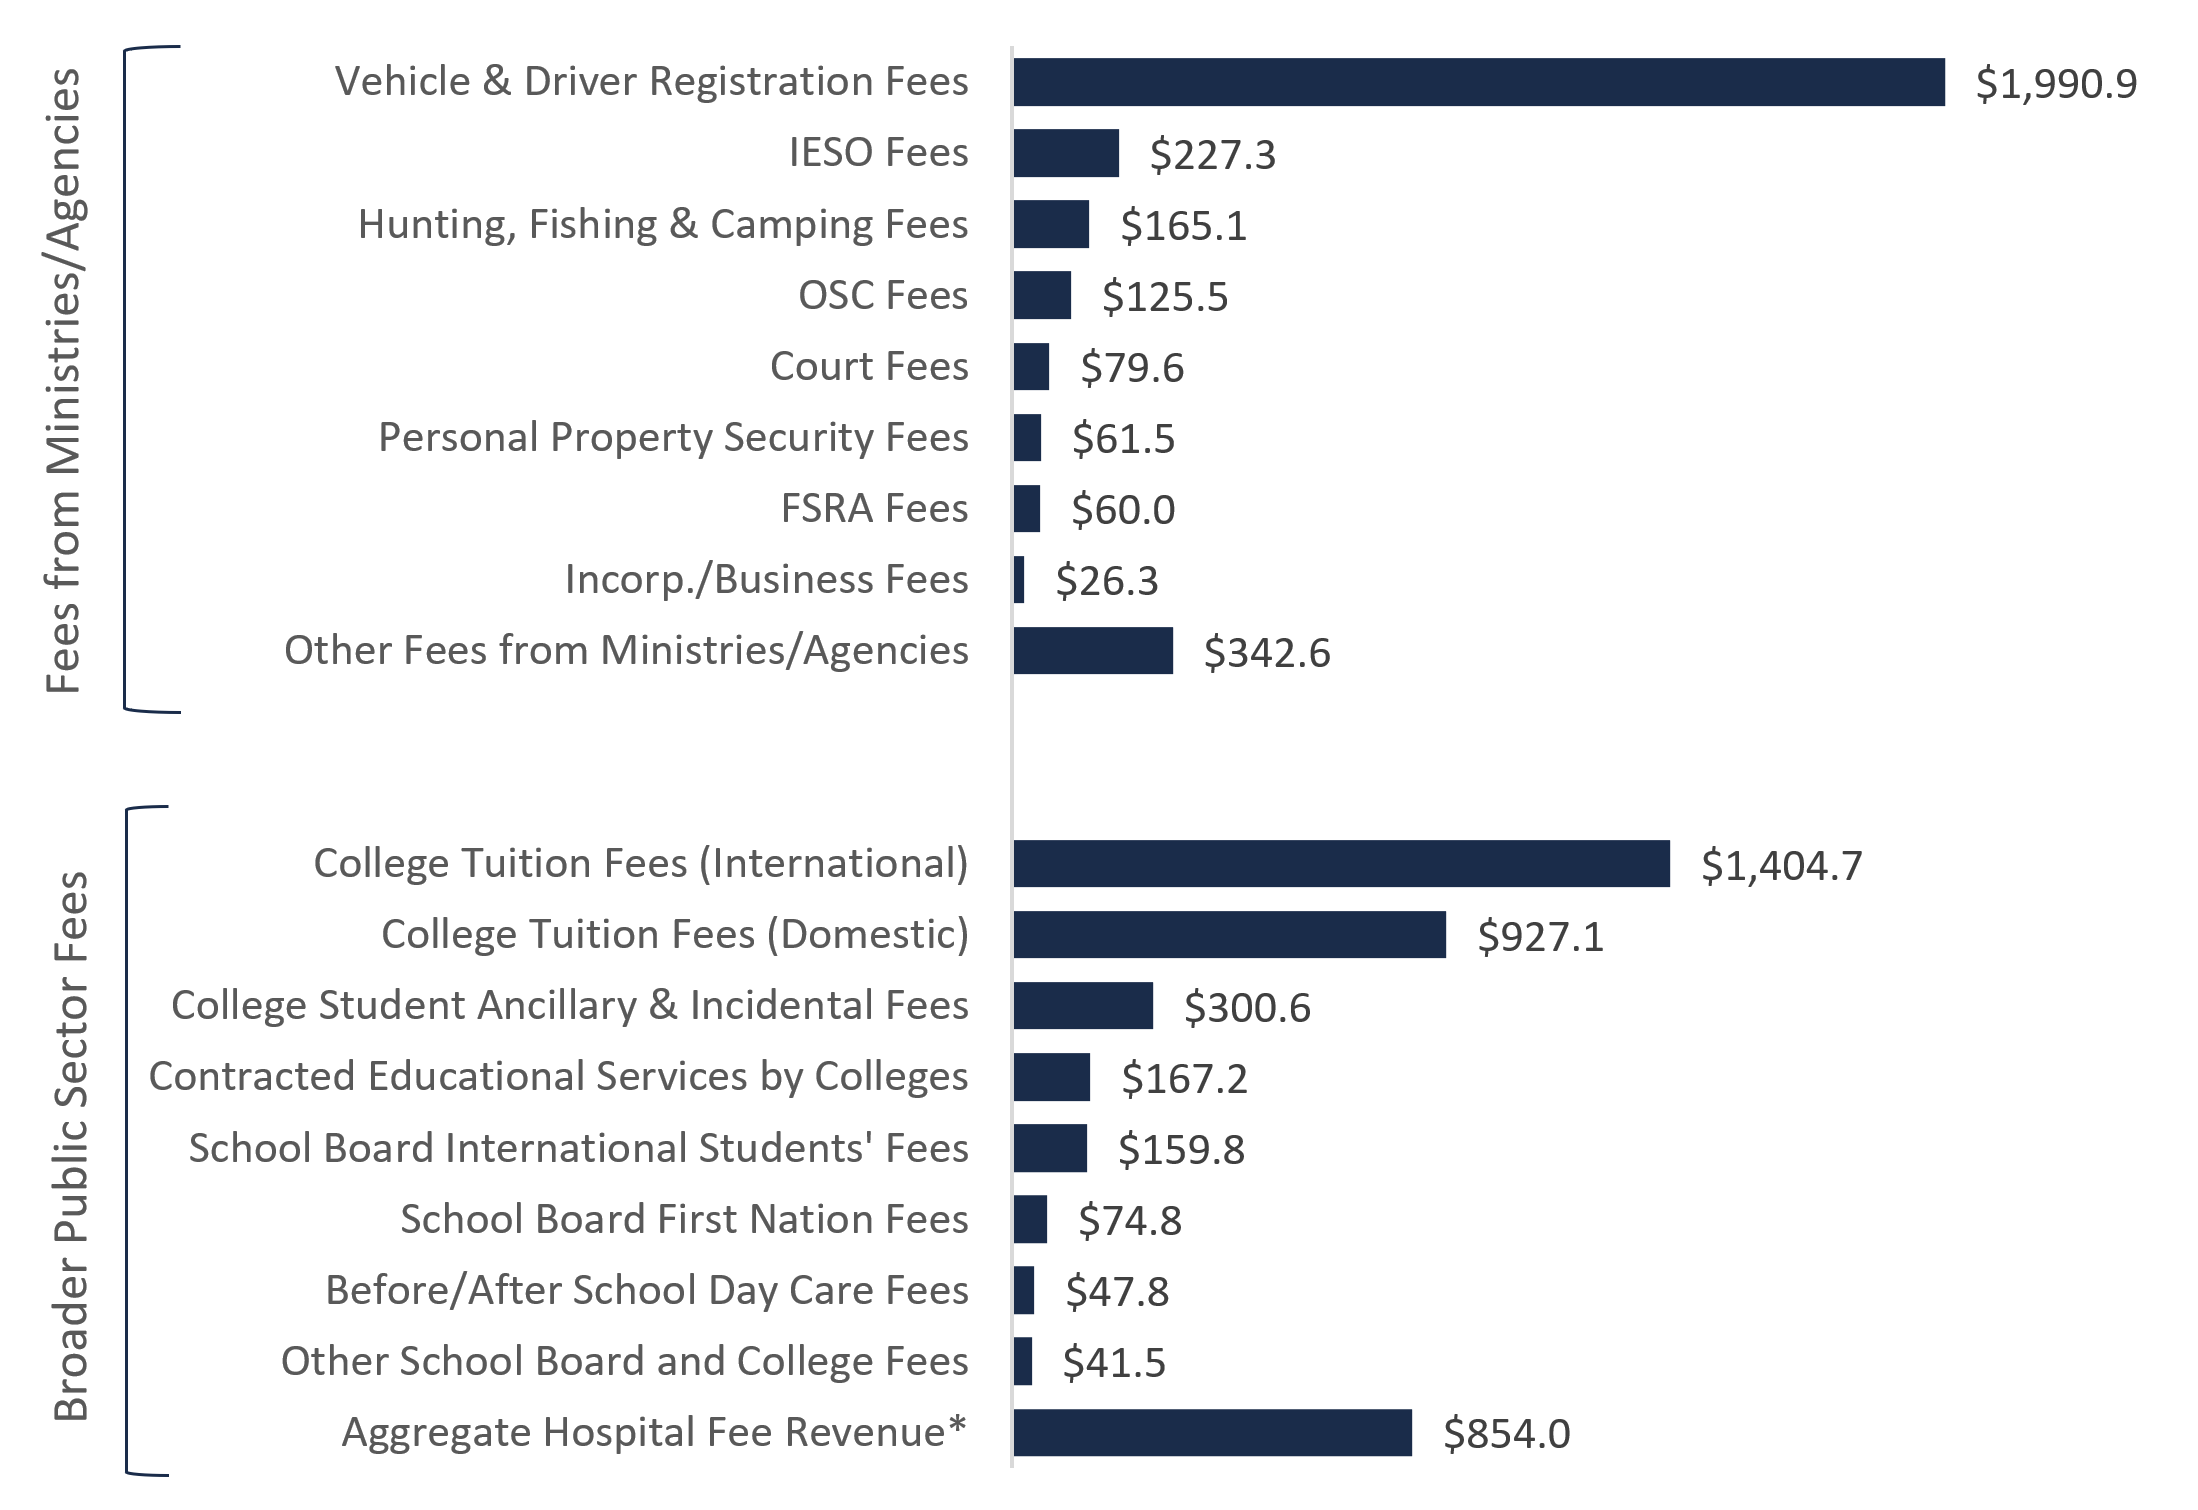 Sources of service fee revenue, 2018-19 ($ millions)